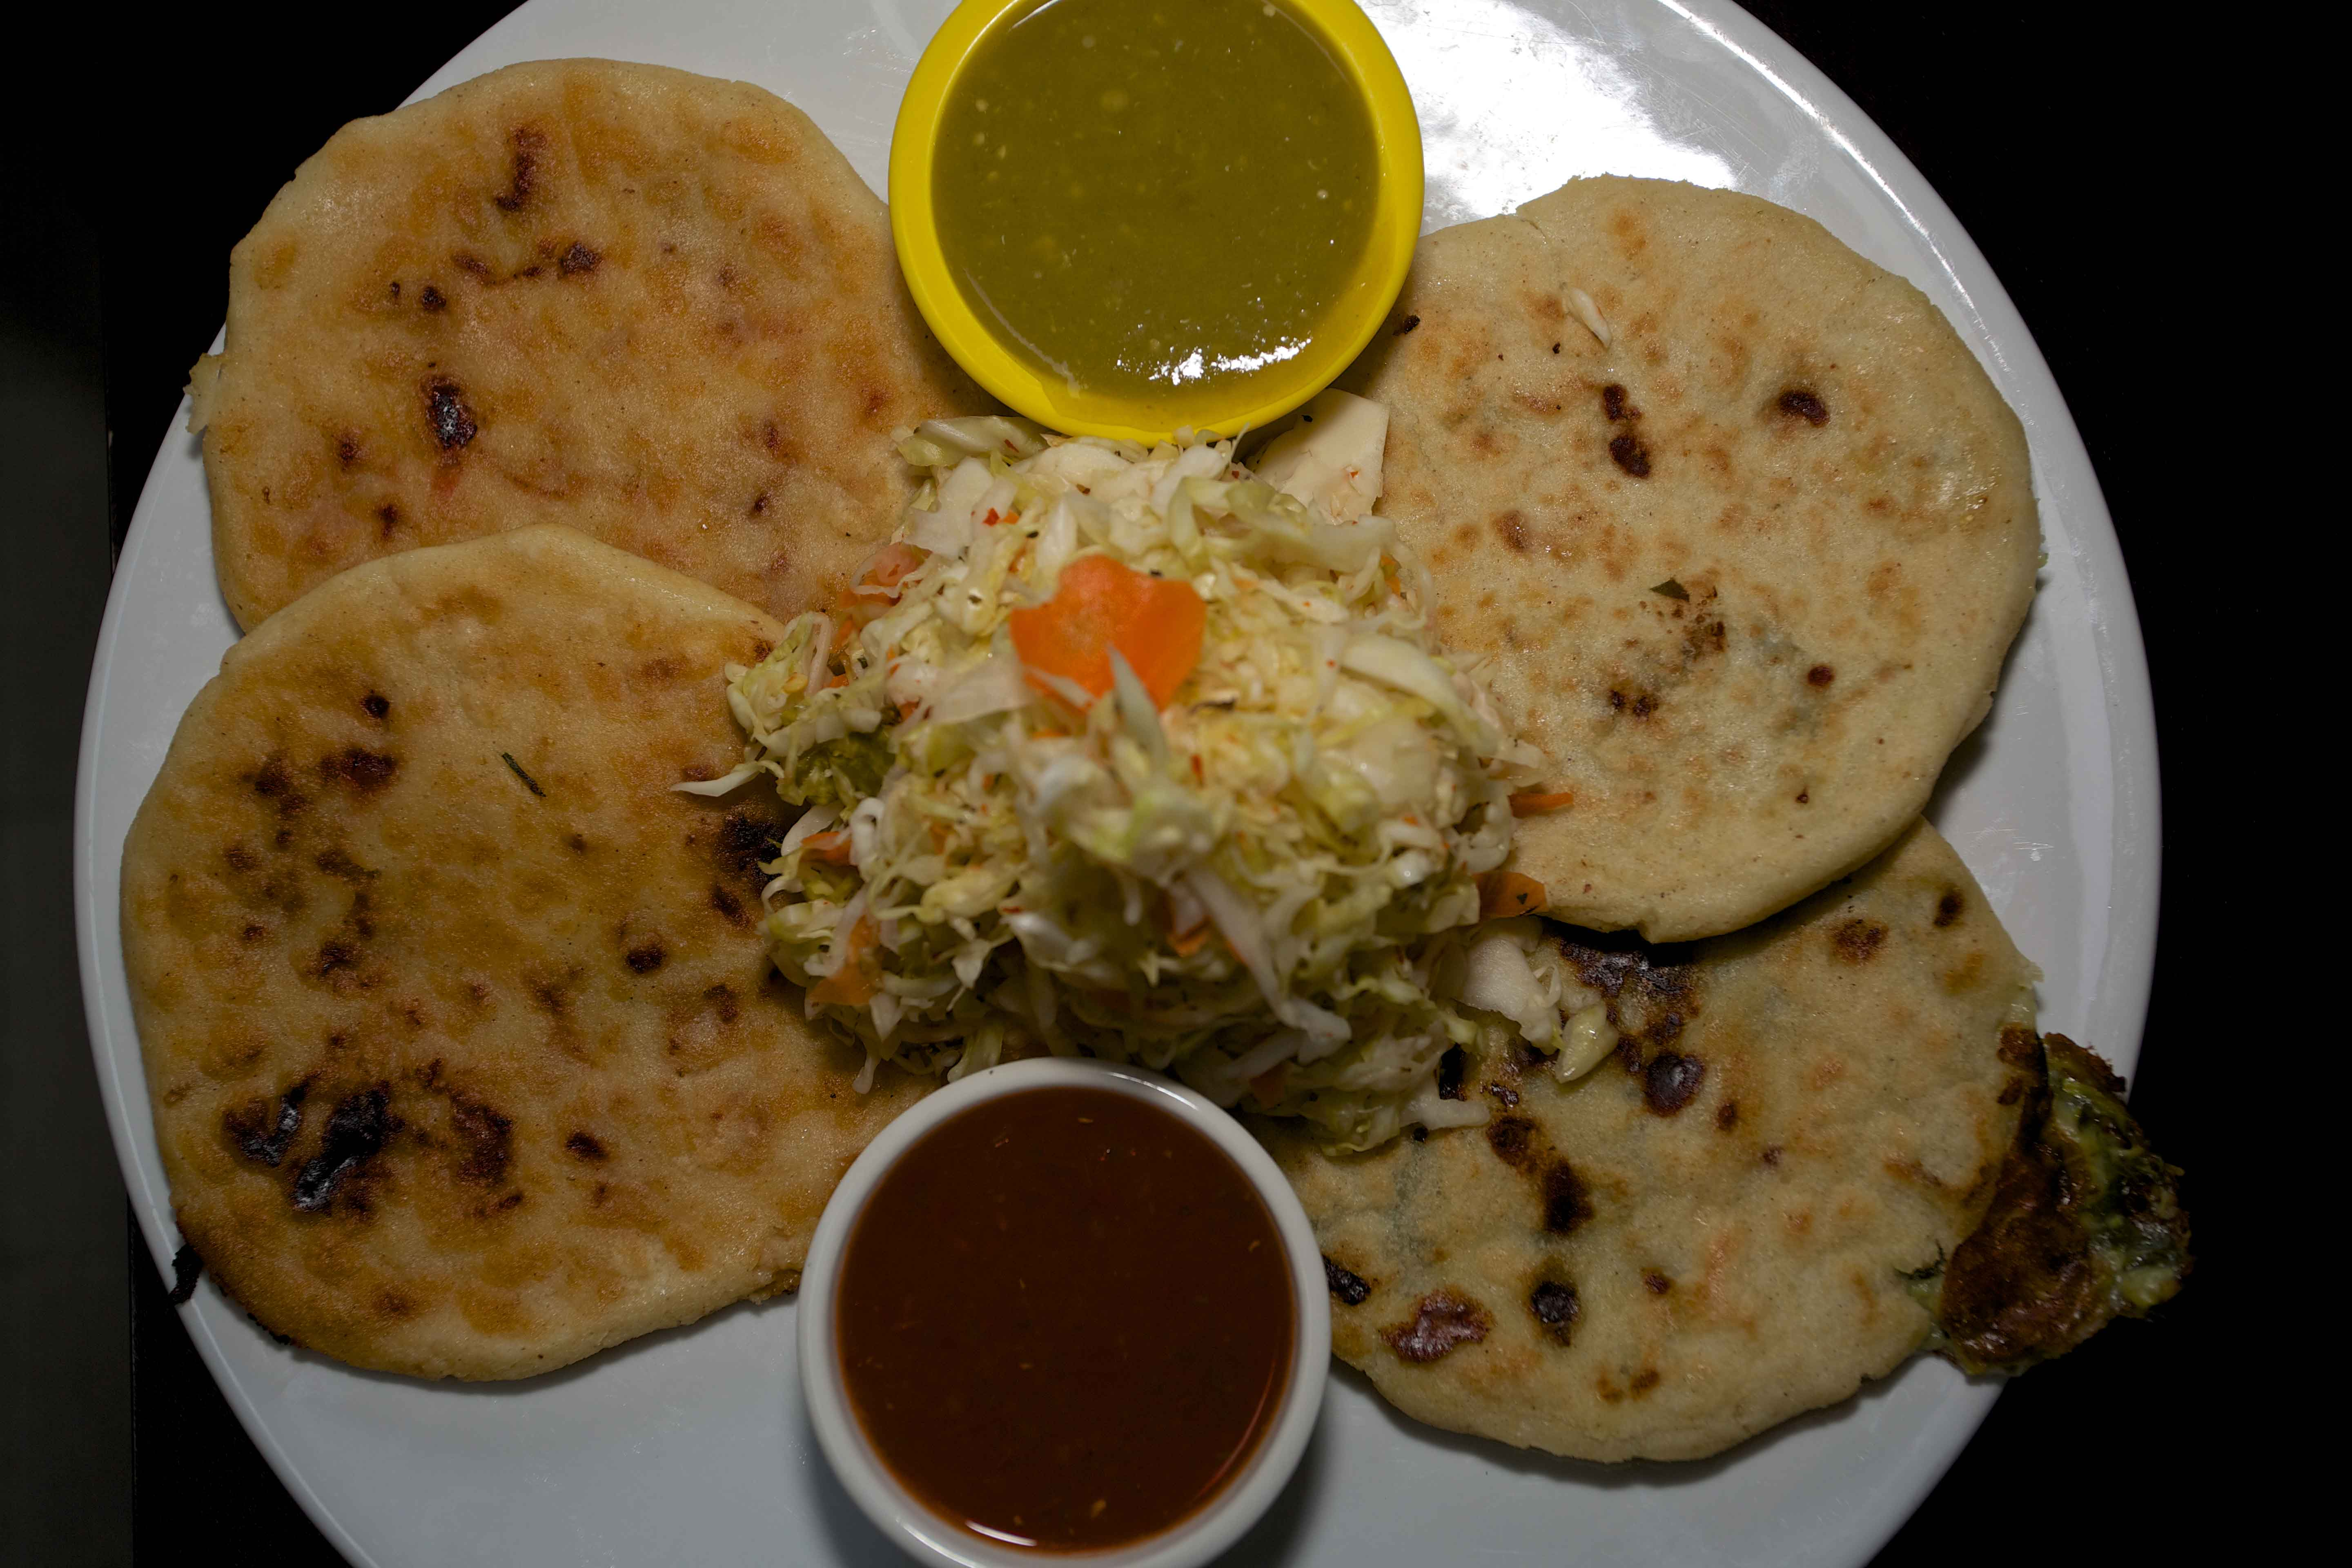 Pork, bean and cheese pupusas served with their curtido and salsa accompaniments from Pupuseria Salvadorena in Santa Rosa on Maple Avenue.